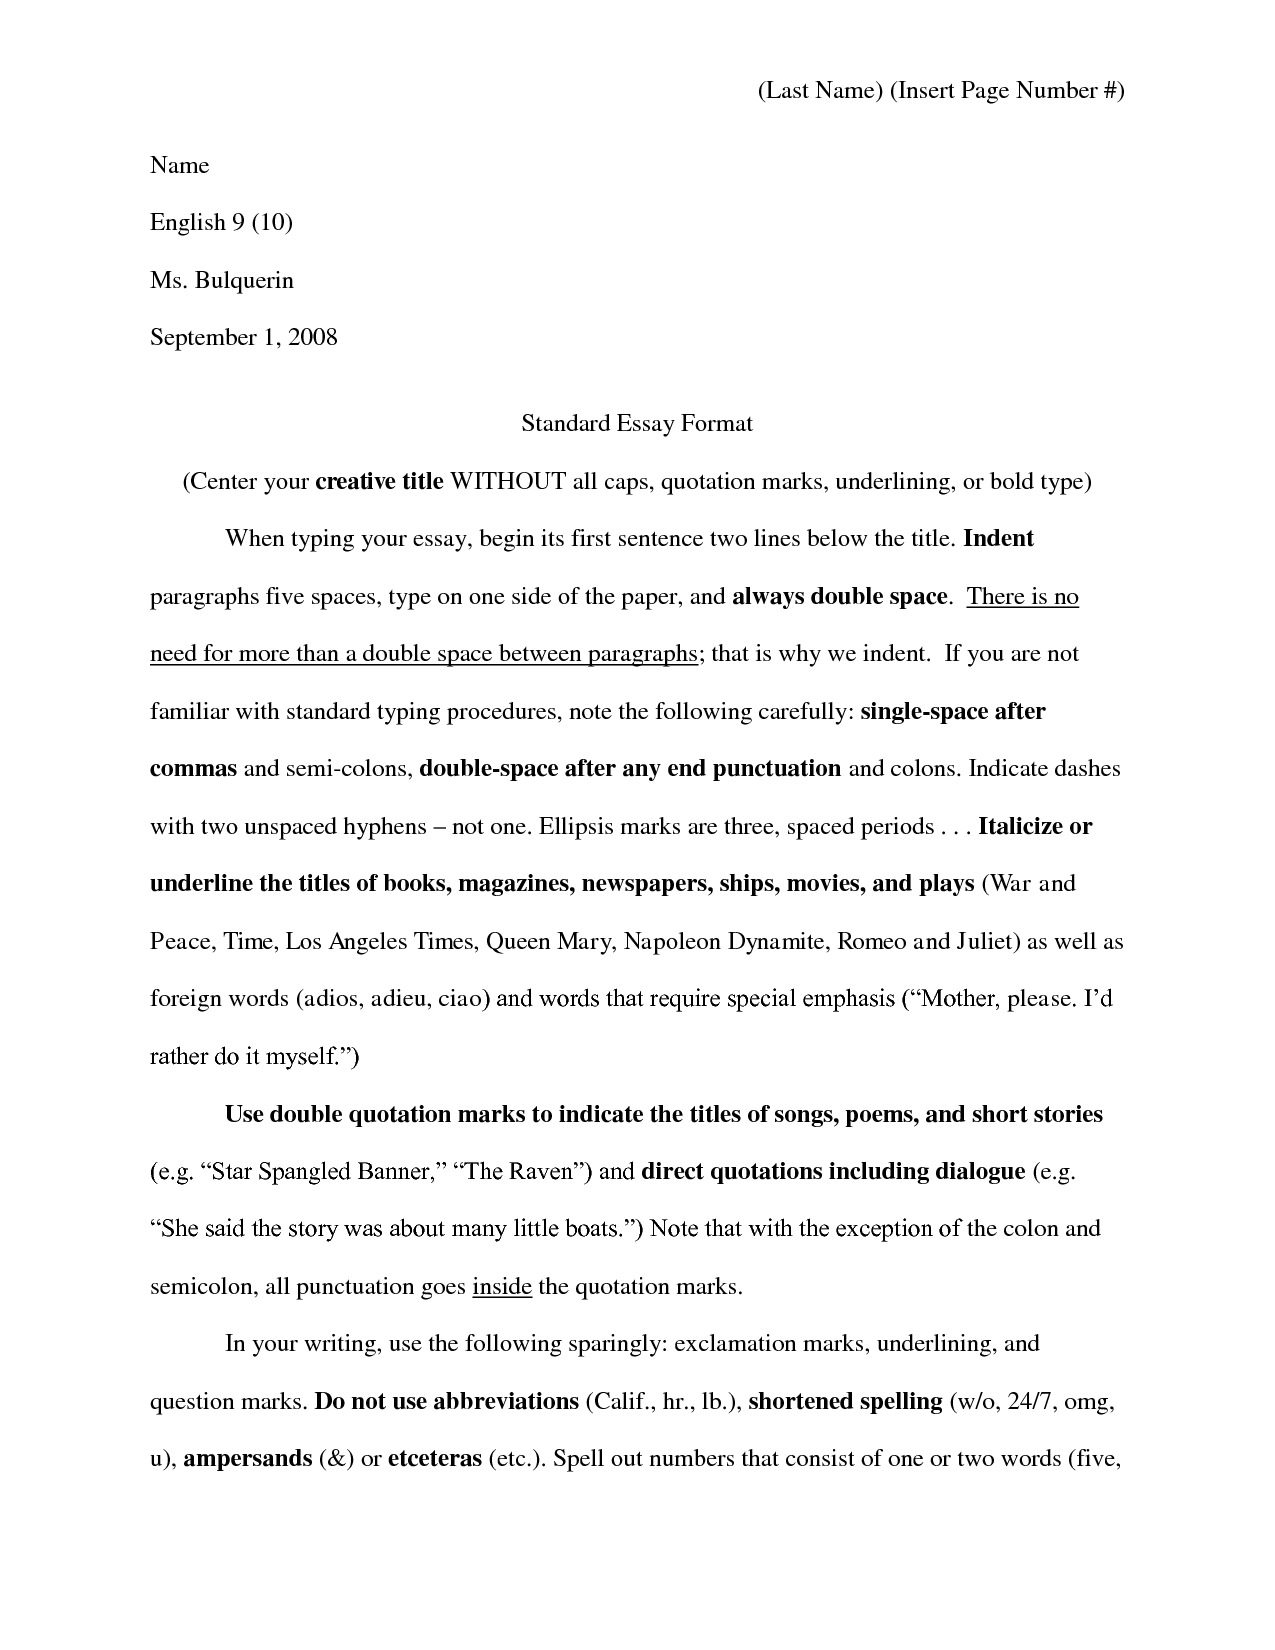 standard essay page format Try to critique your own essays in the same way this sample essay is critiqued below the introduction sample college application essay 1.